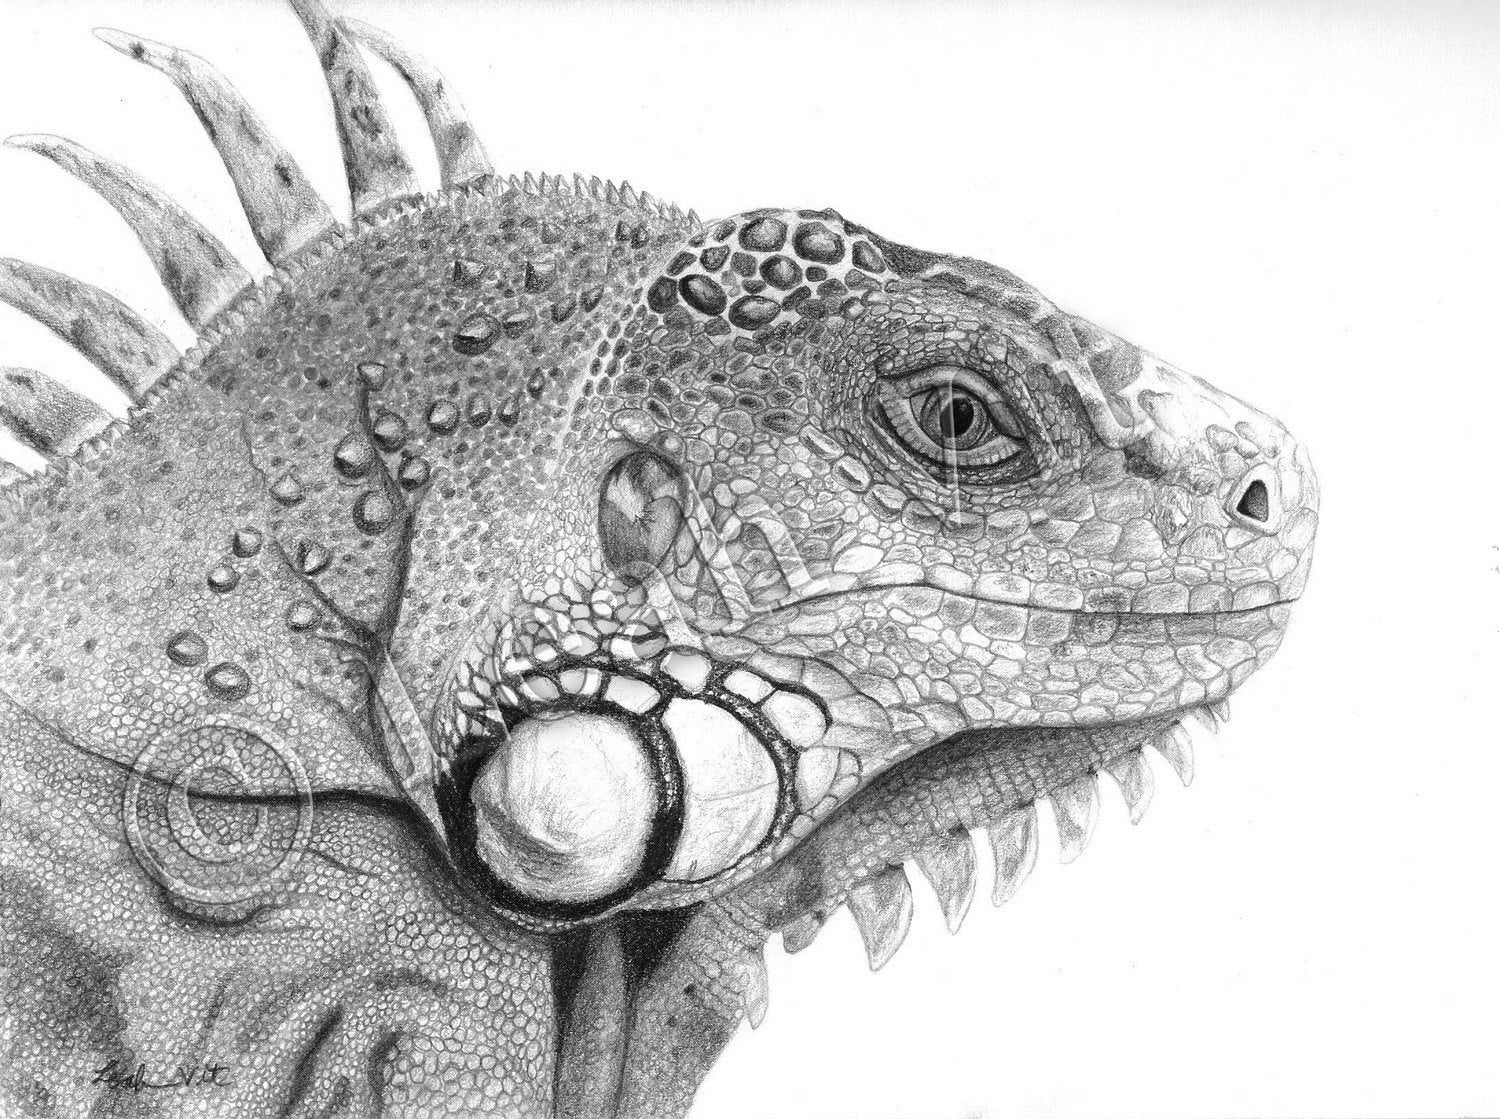 Cute iguana drawing